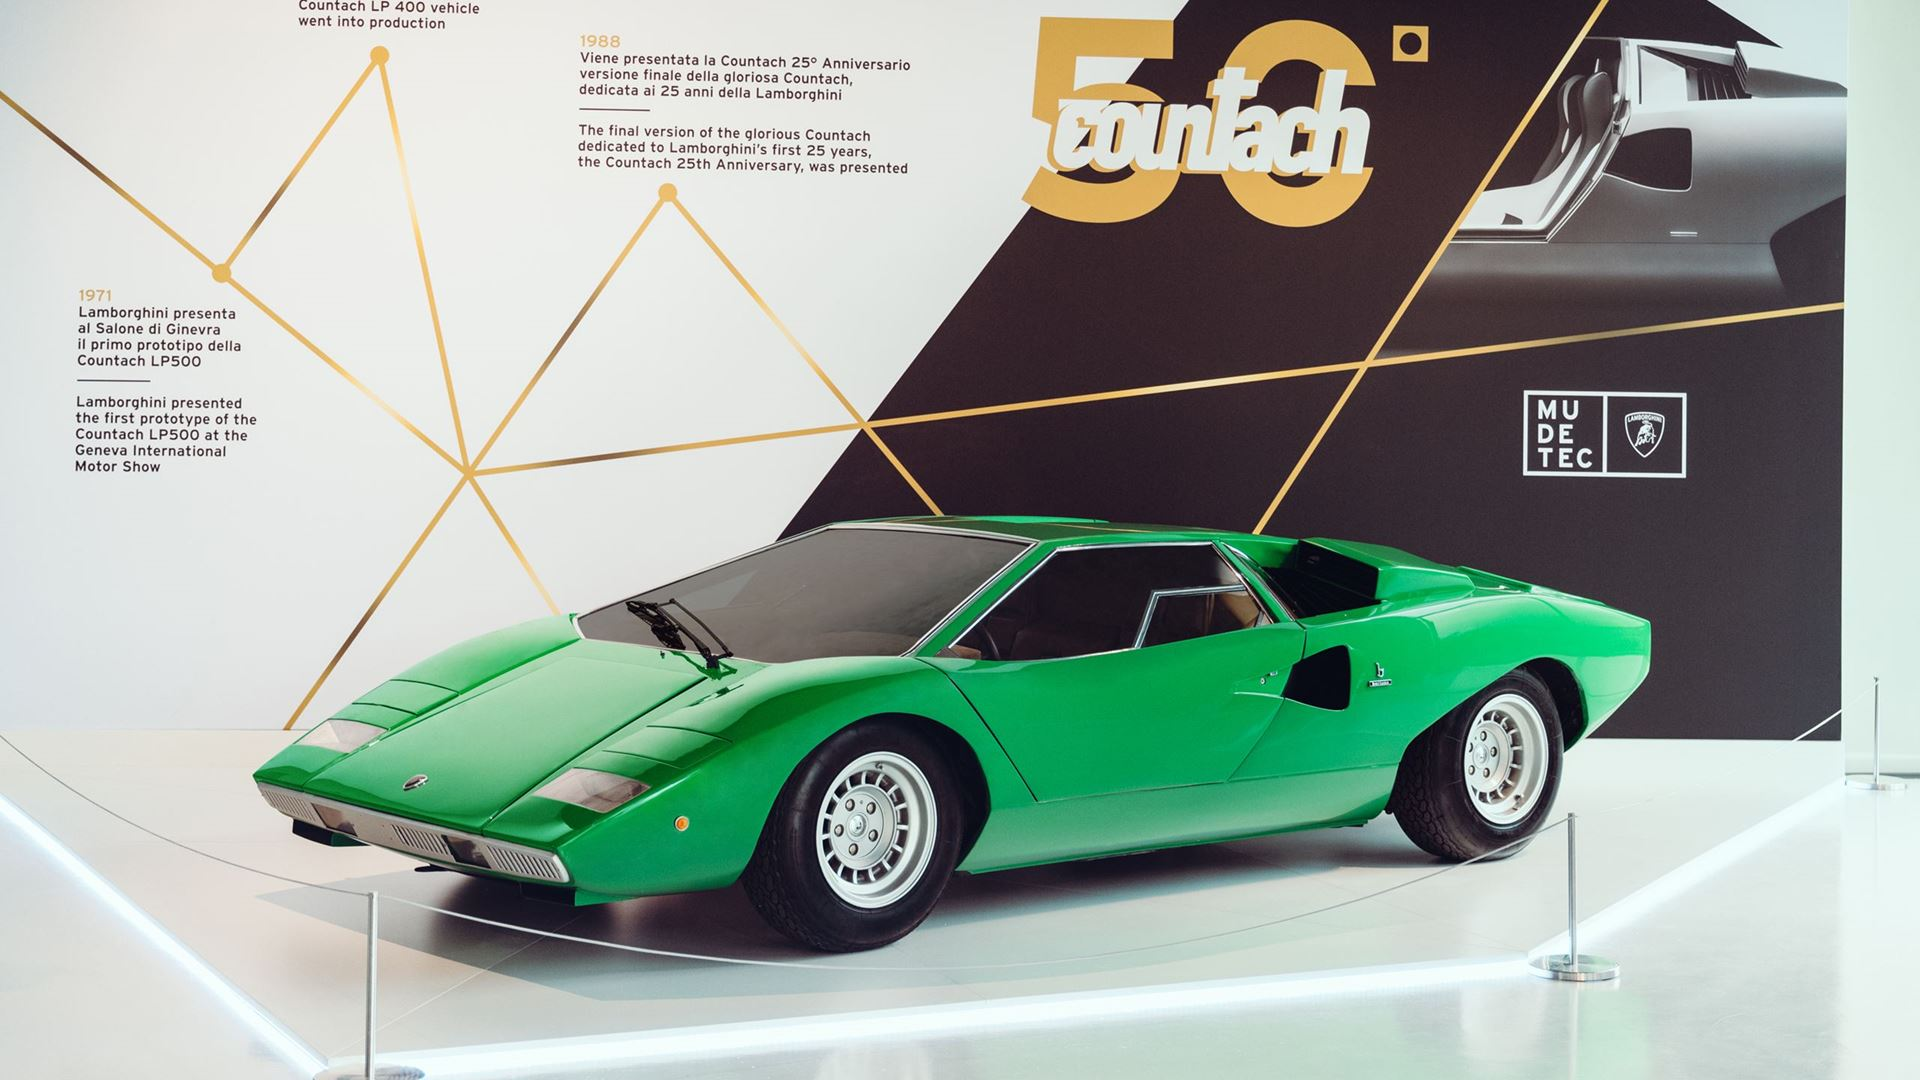 Automobili Lamborghini: The MUDETEC reopens its doors with a new exhibition around innovation and tradition - Image 6